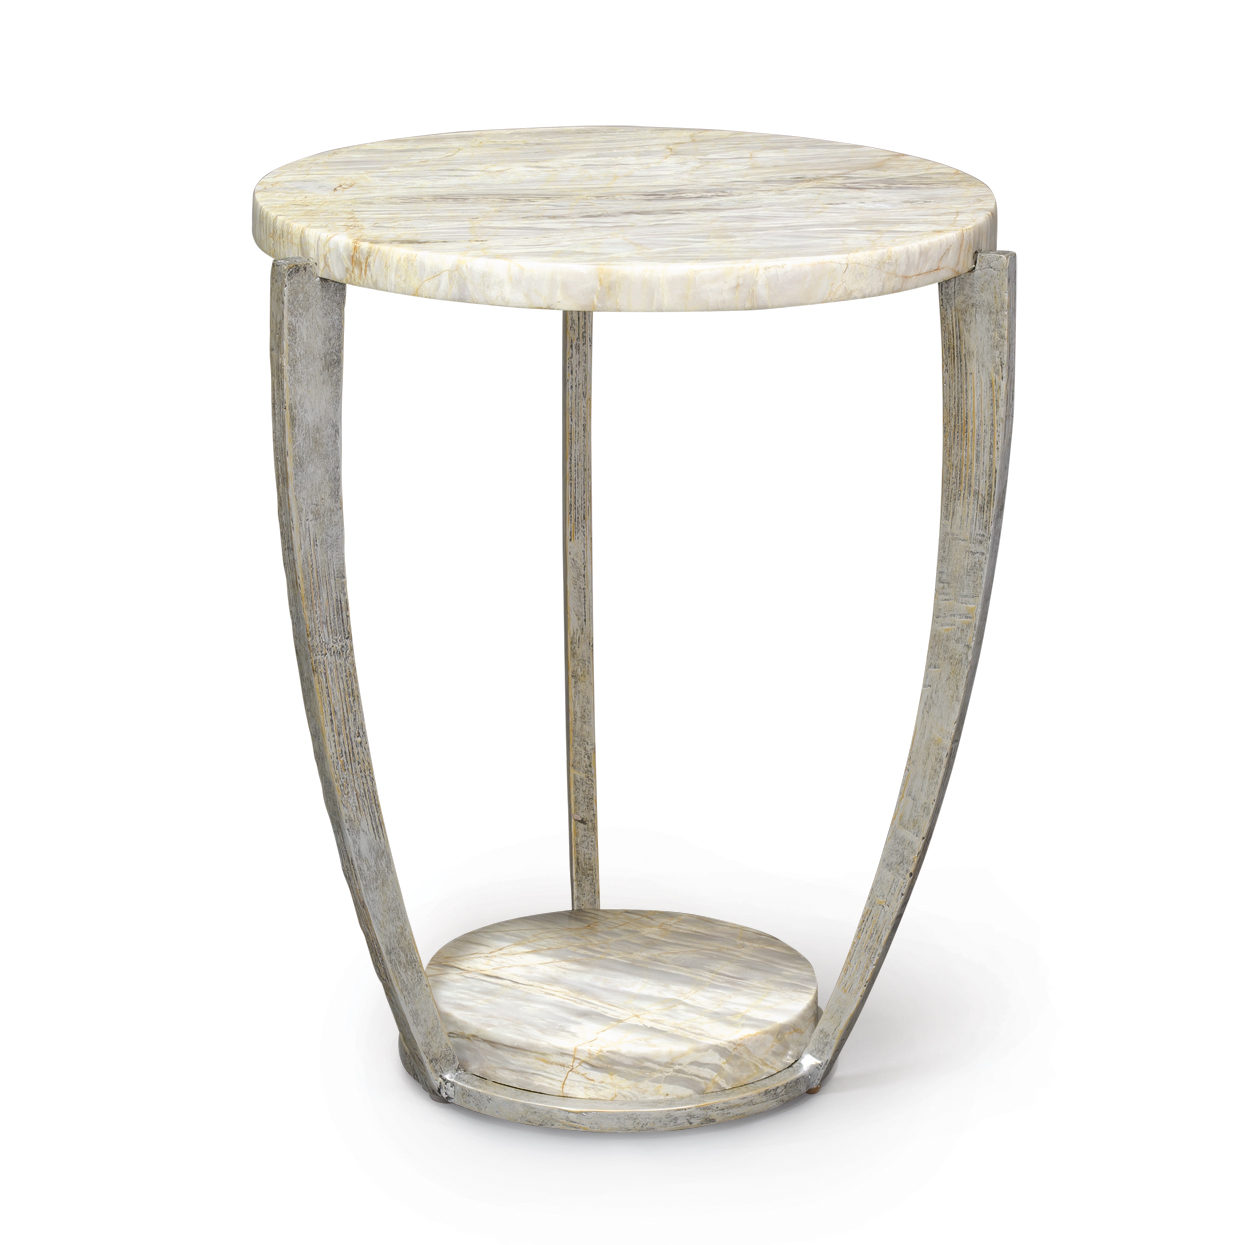 exciting marble accent table set bistro threshold top wood round small antique and faux killian target metal black white nero full size sea themed lamps narrow coffee with storage